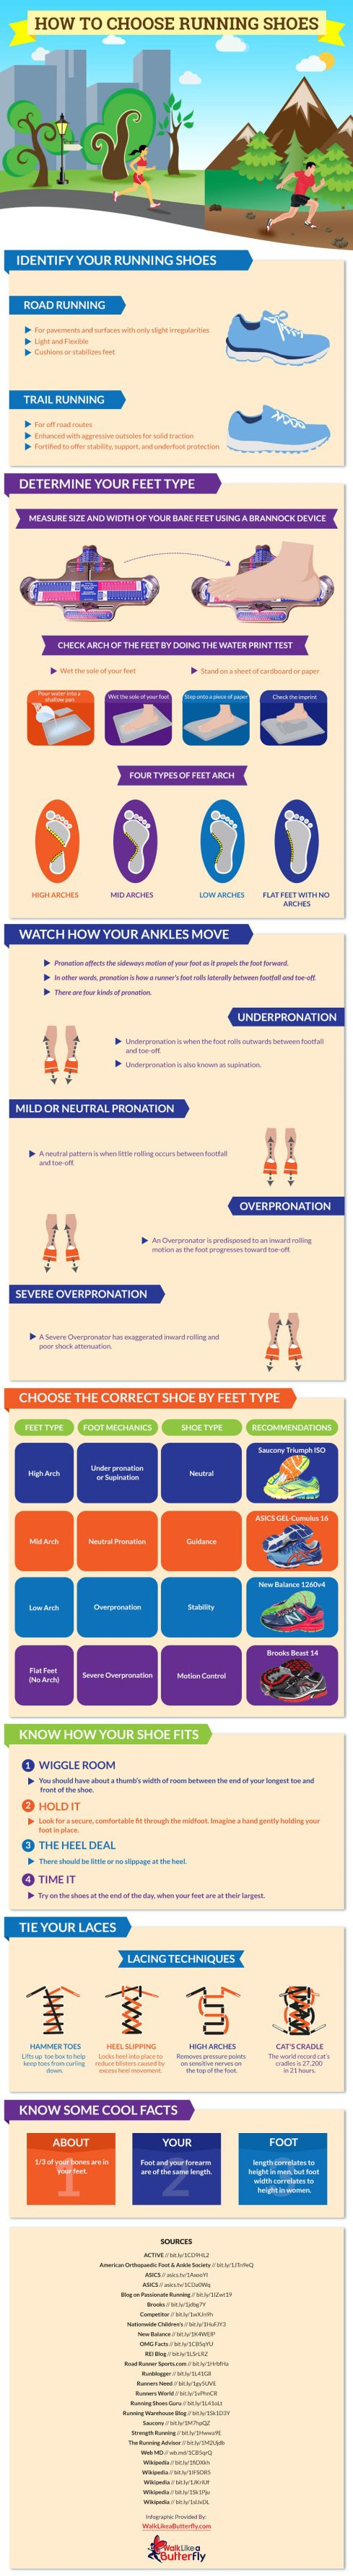 How to choose the running shoes 2